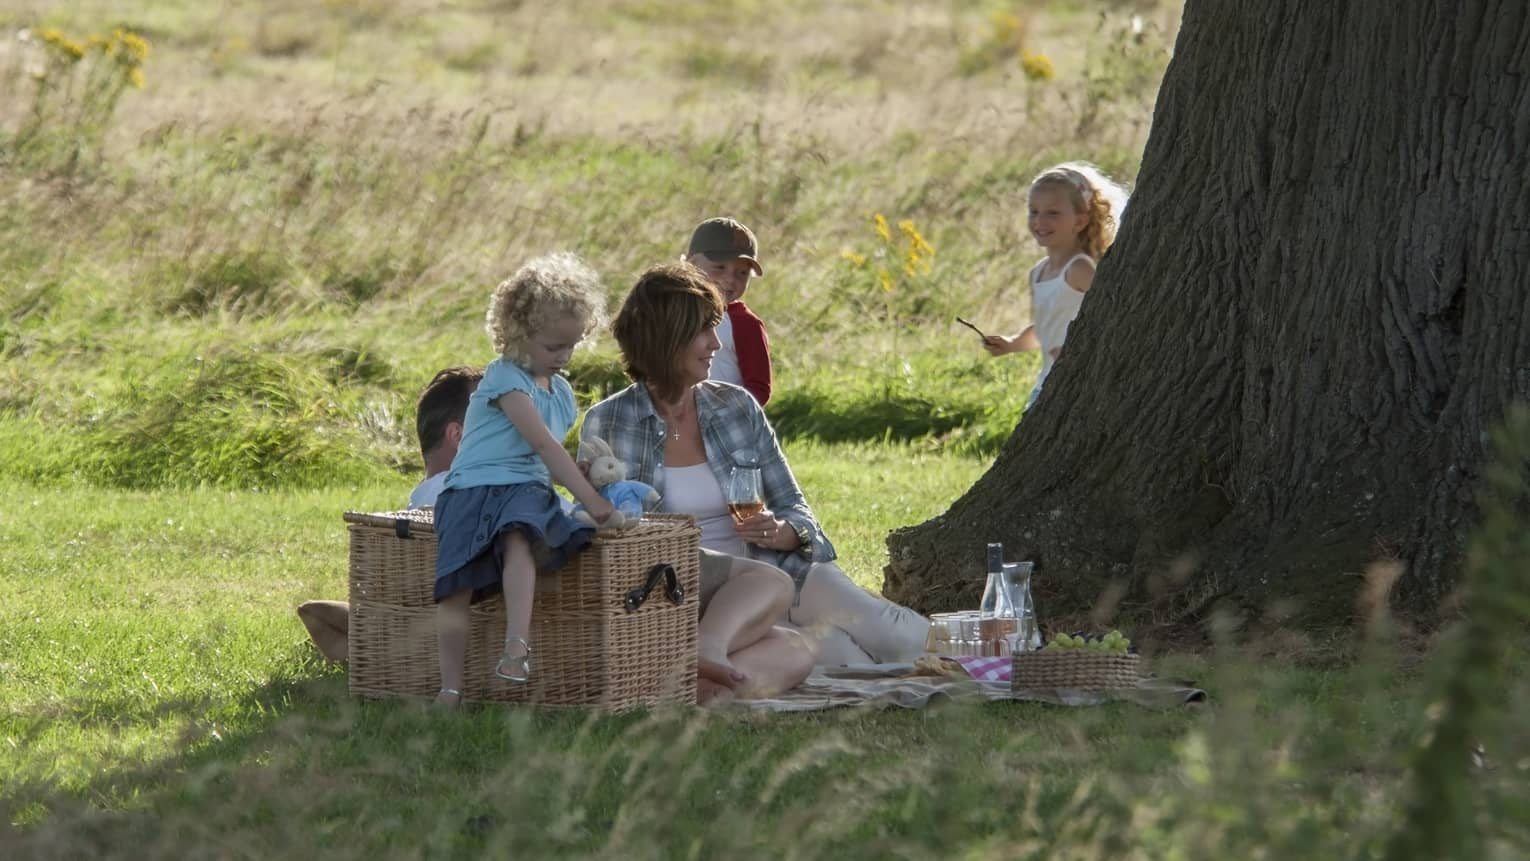 Family sits on grass under large tree at picnic, young girl sits on large wicker basket